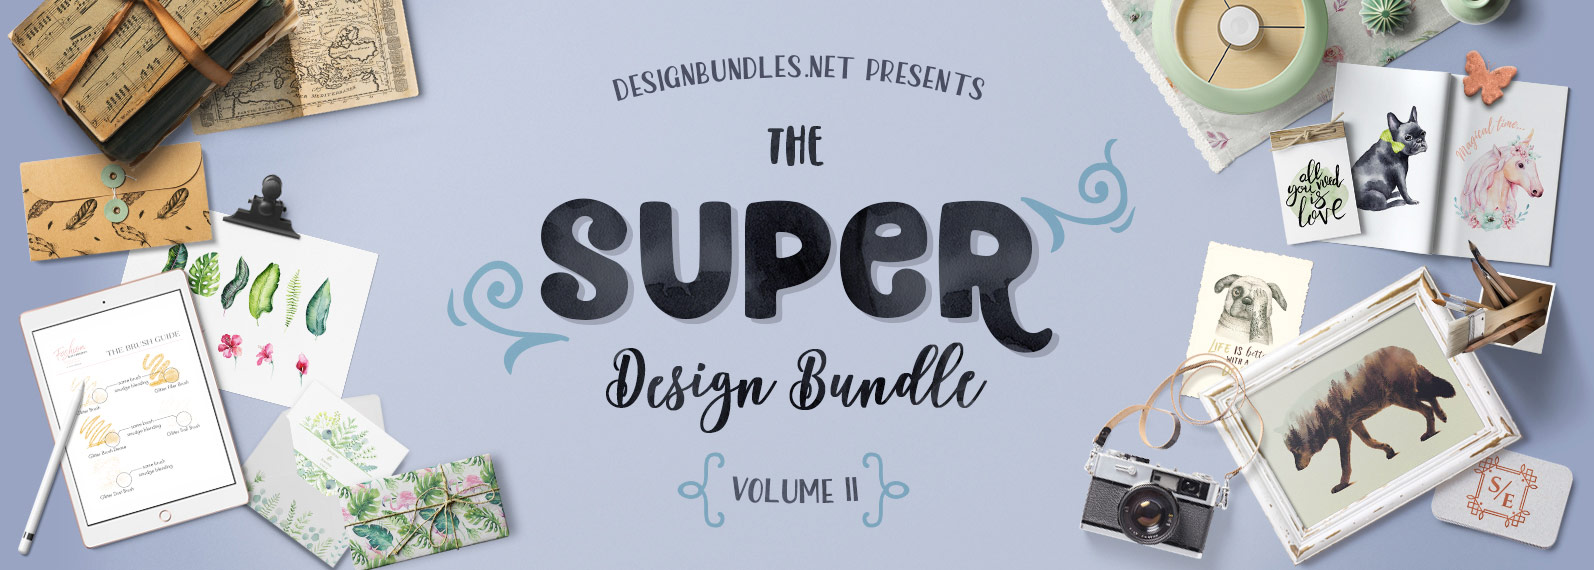 The Super Design Bundle Vol II Cover